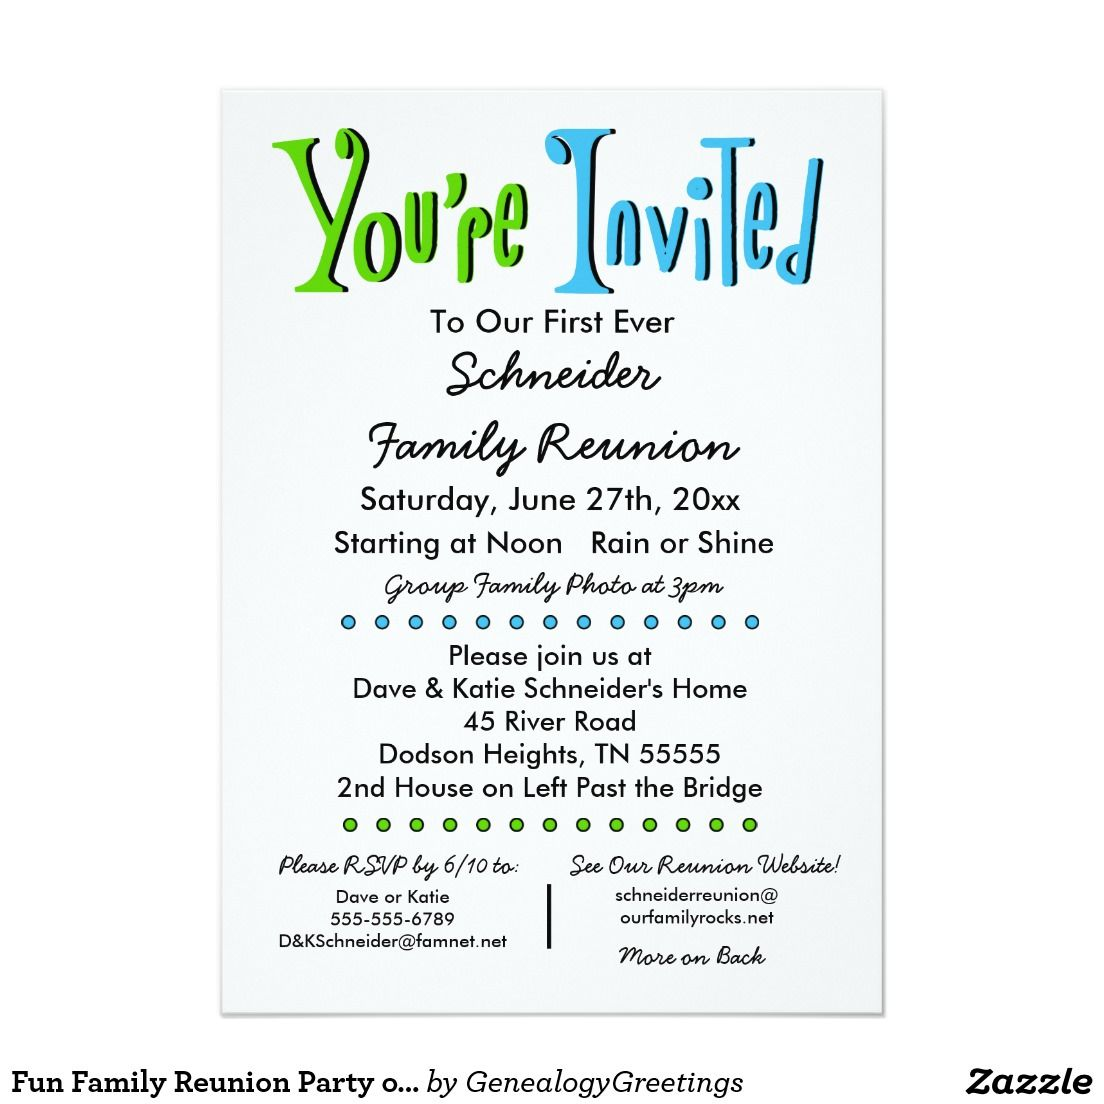 Fun Family Reunion Party Or Event Invitation  X  Invitation